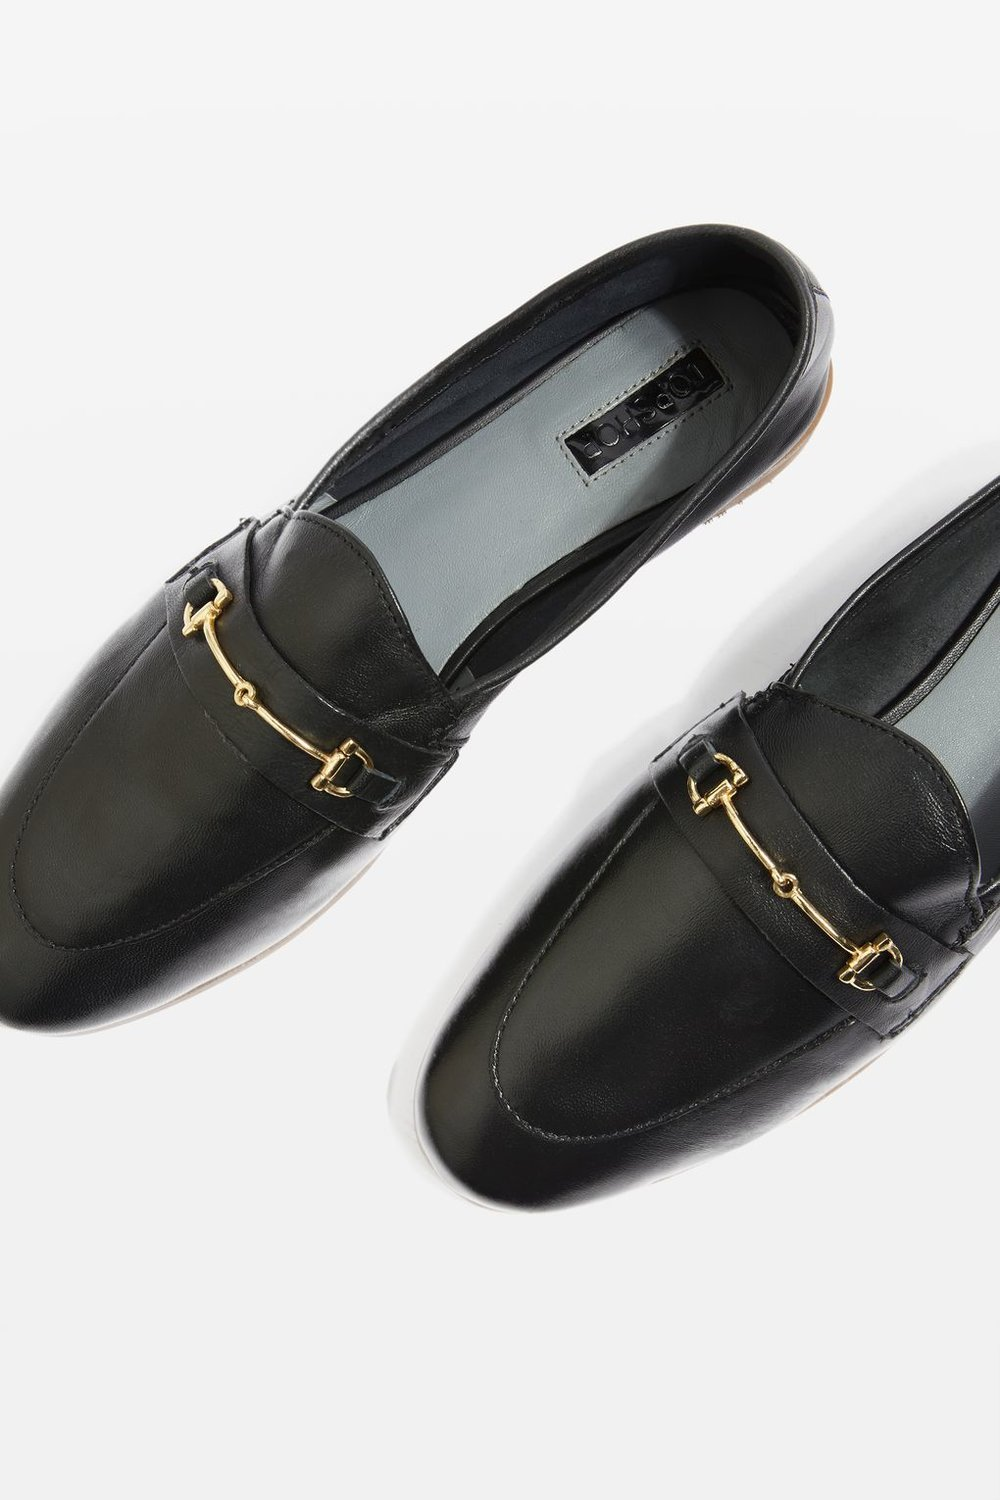 Topshop Karpenter Loafers - £45